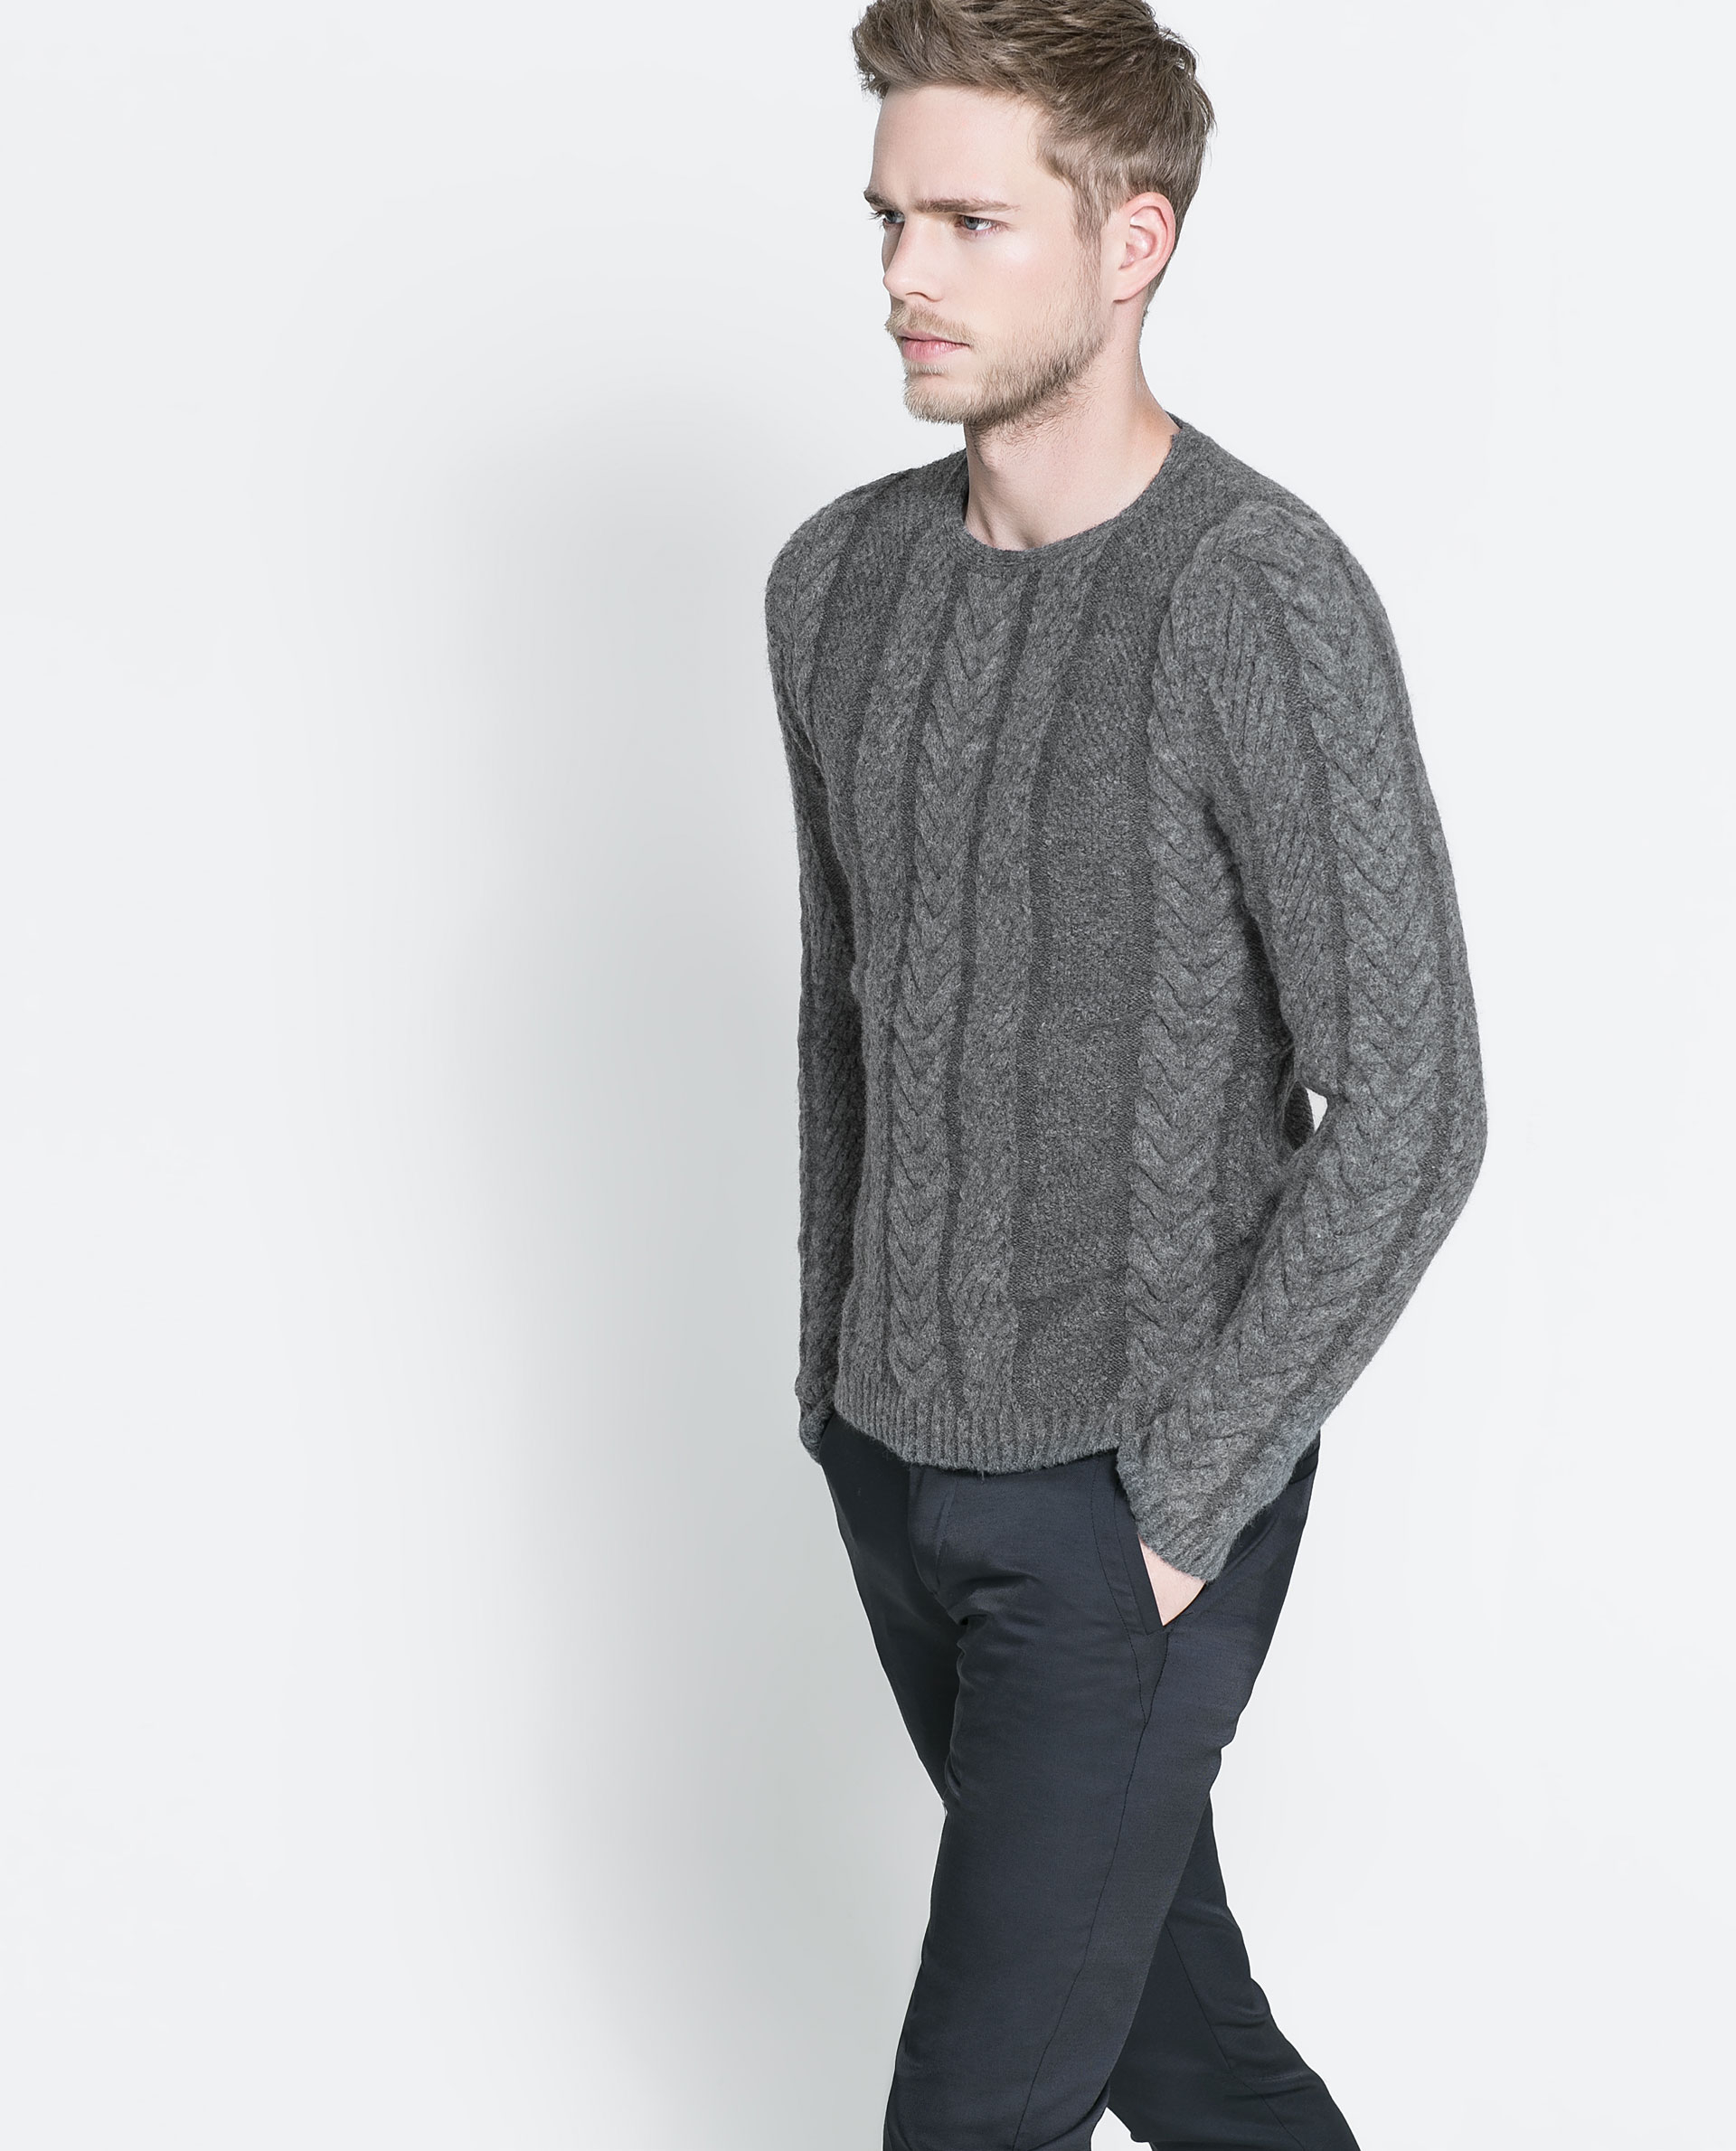 Zara Cable Knit Sweater In Gray For Men Lyst